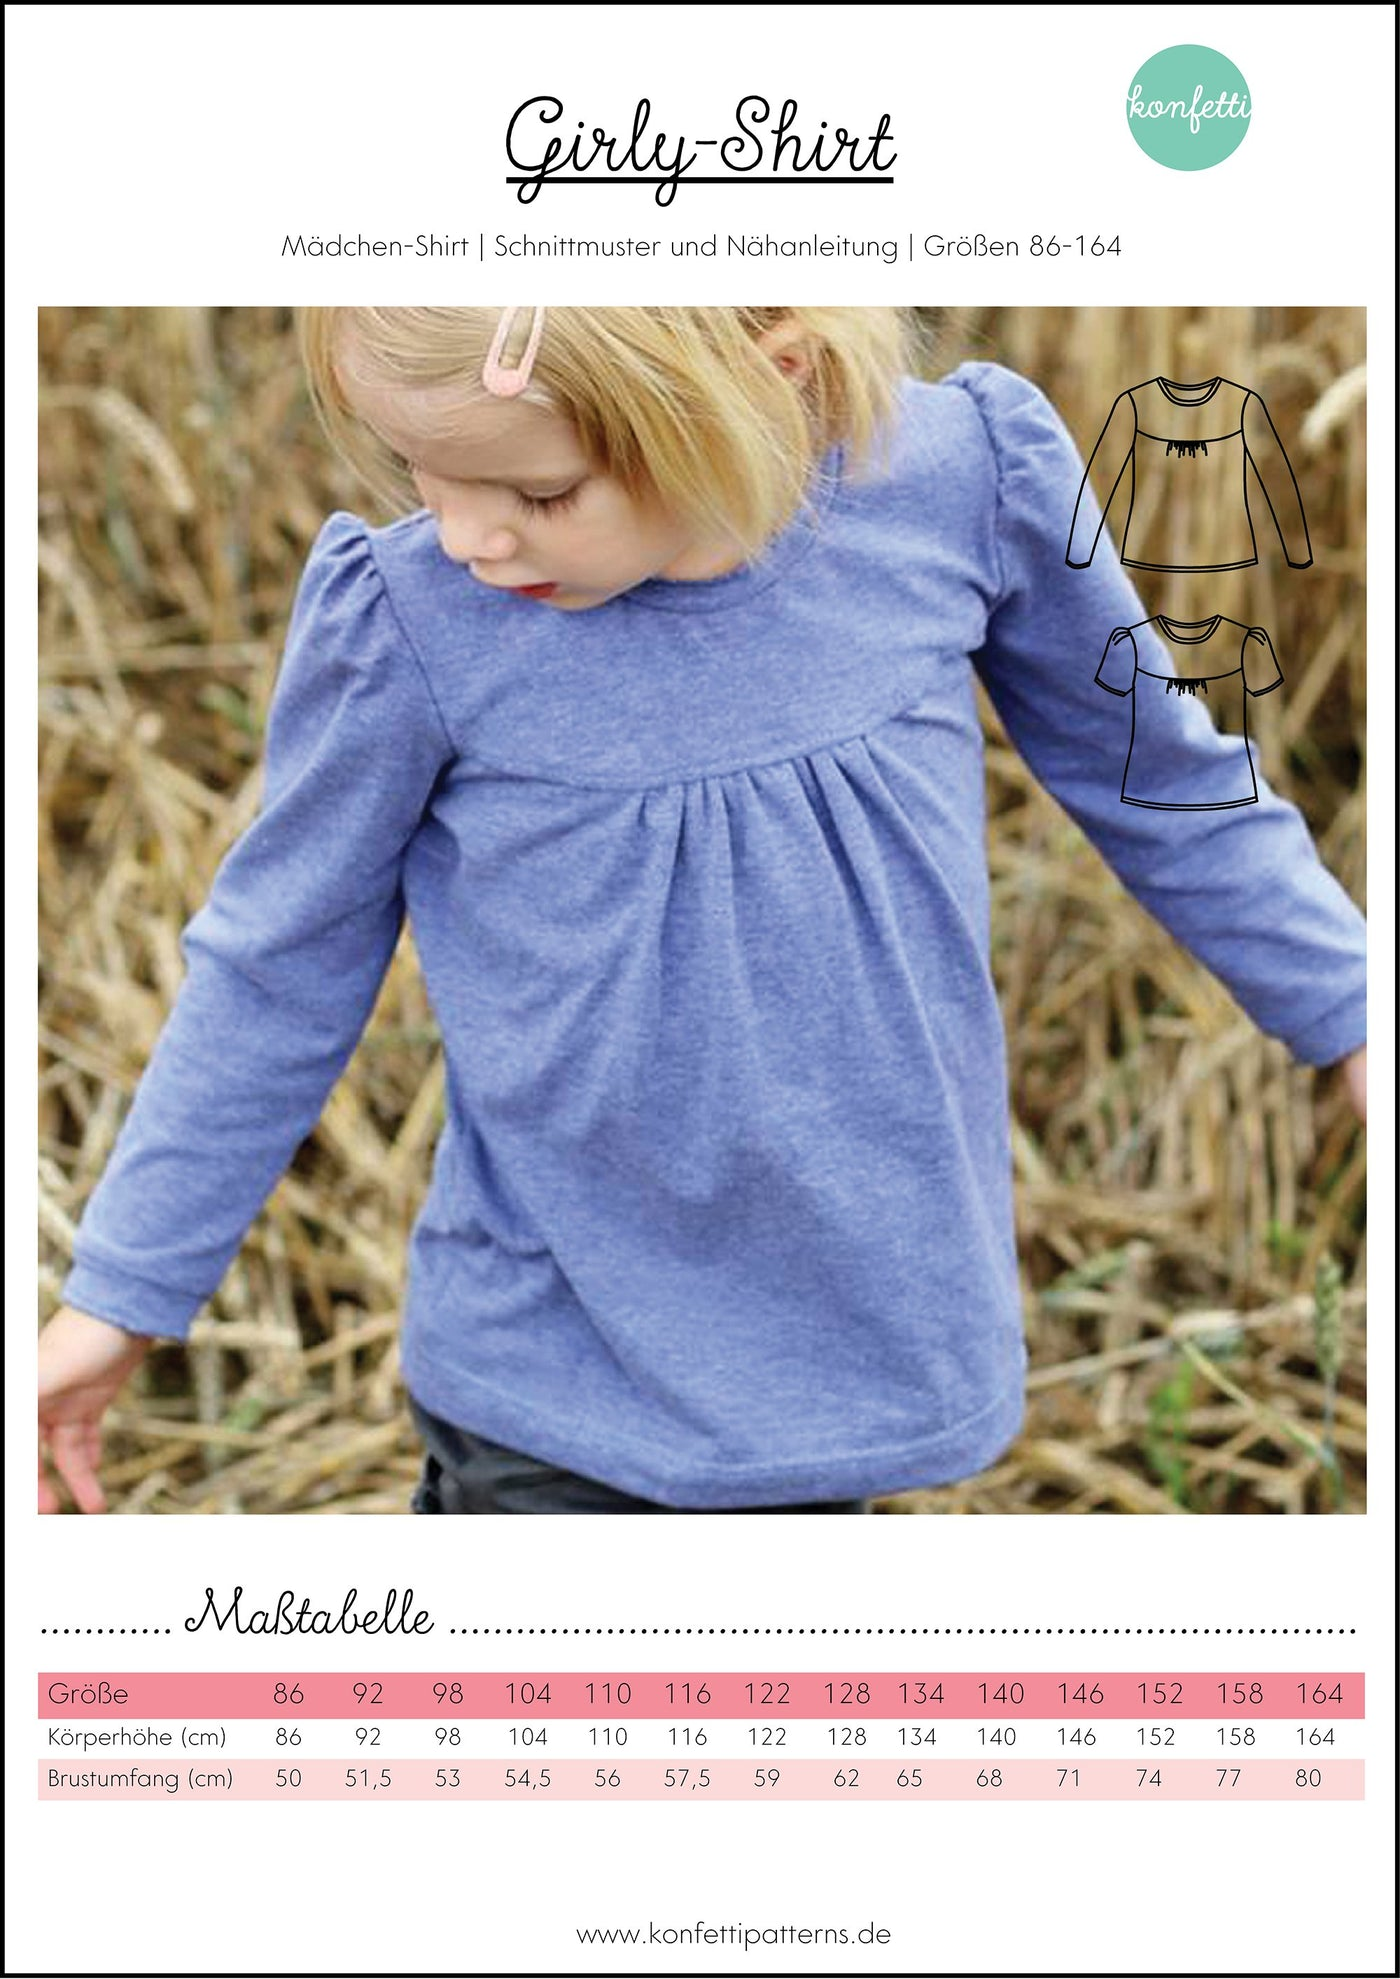 Girly Shirt Papierschnittmuster